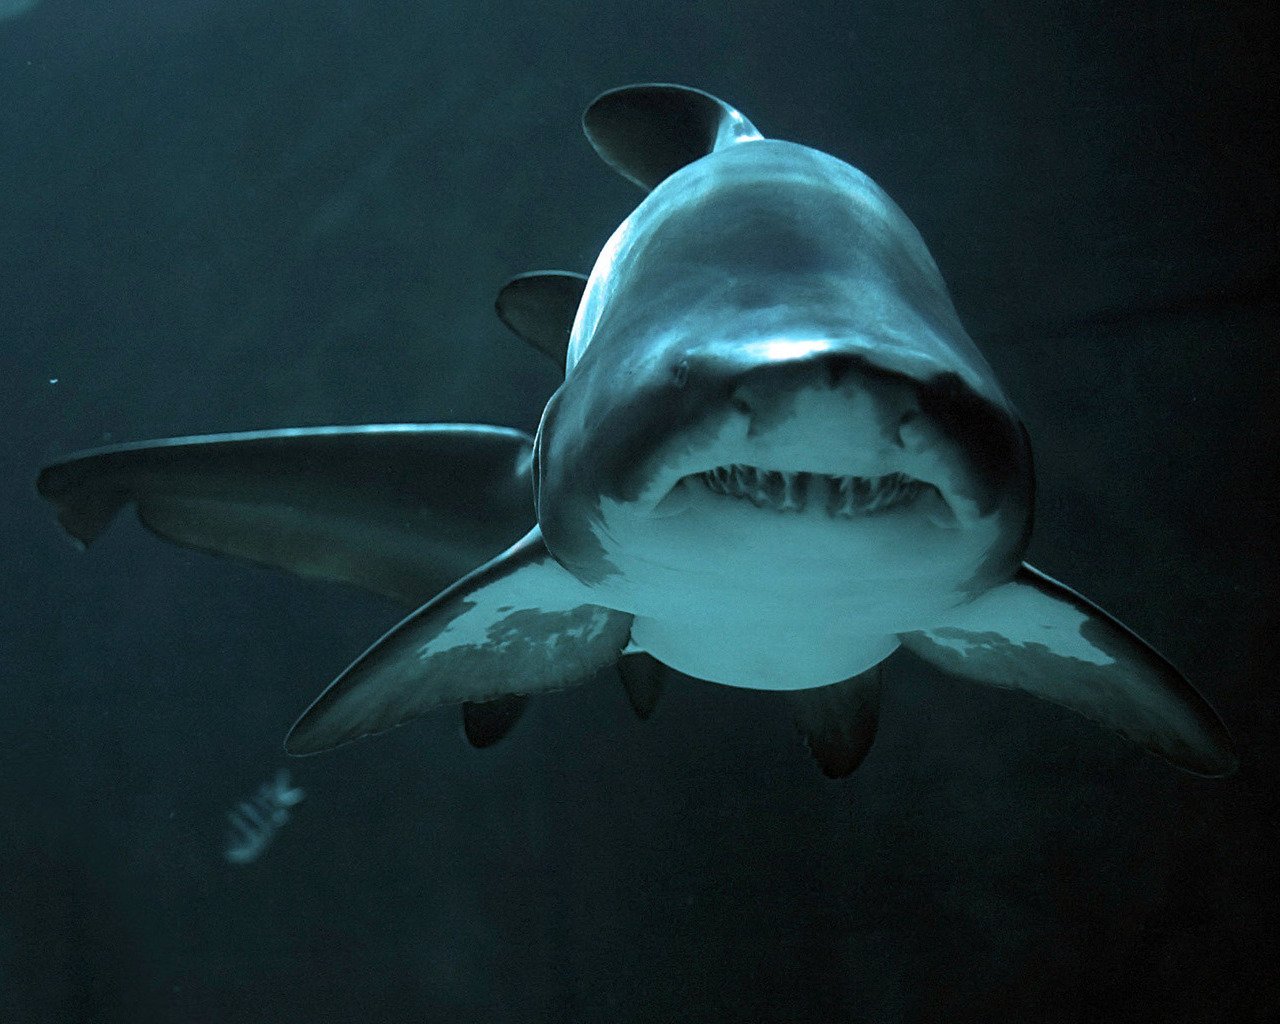 16611 download wallpaper Animals, Sea, Sharks, Fishes screensavers and pictures for free